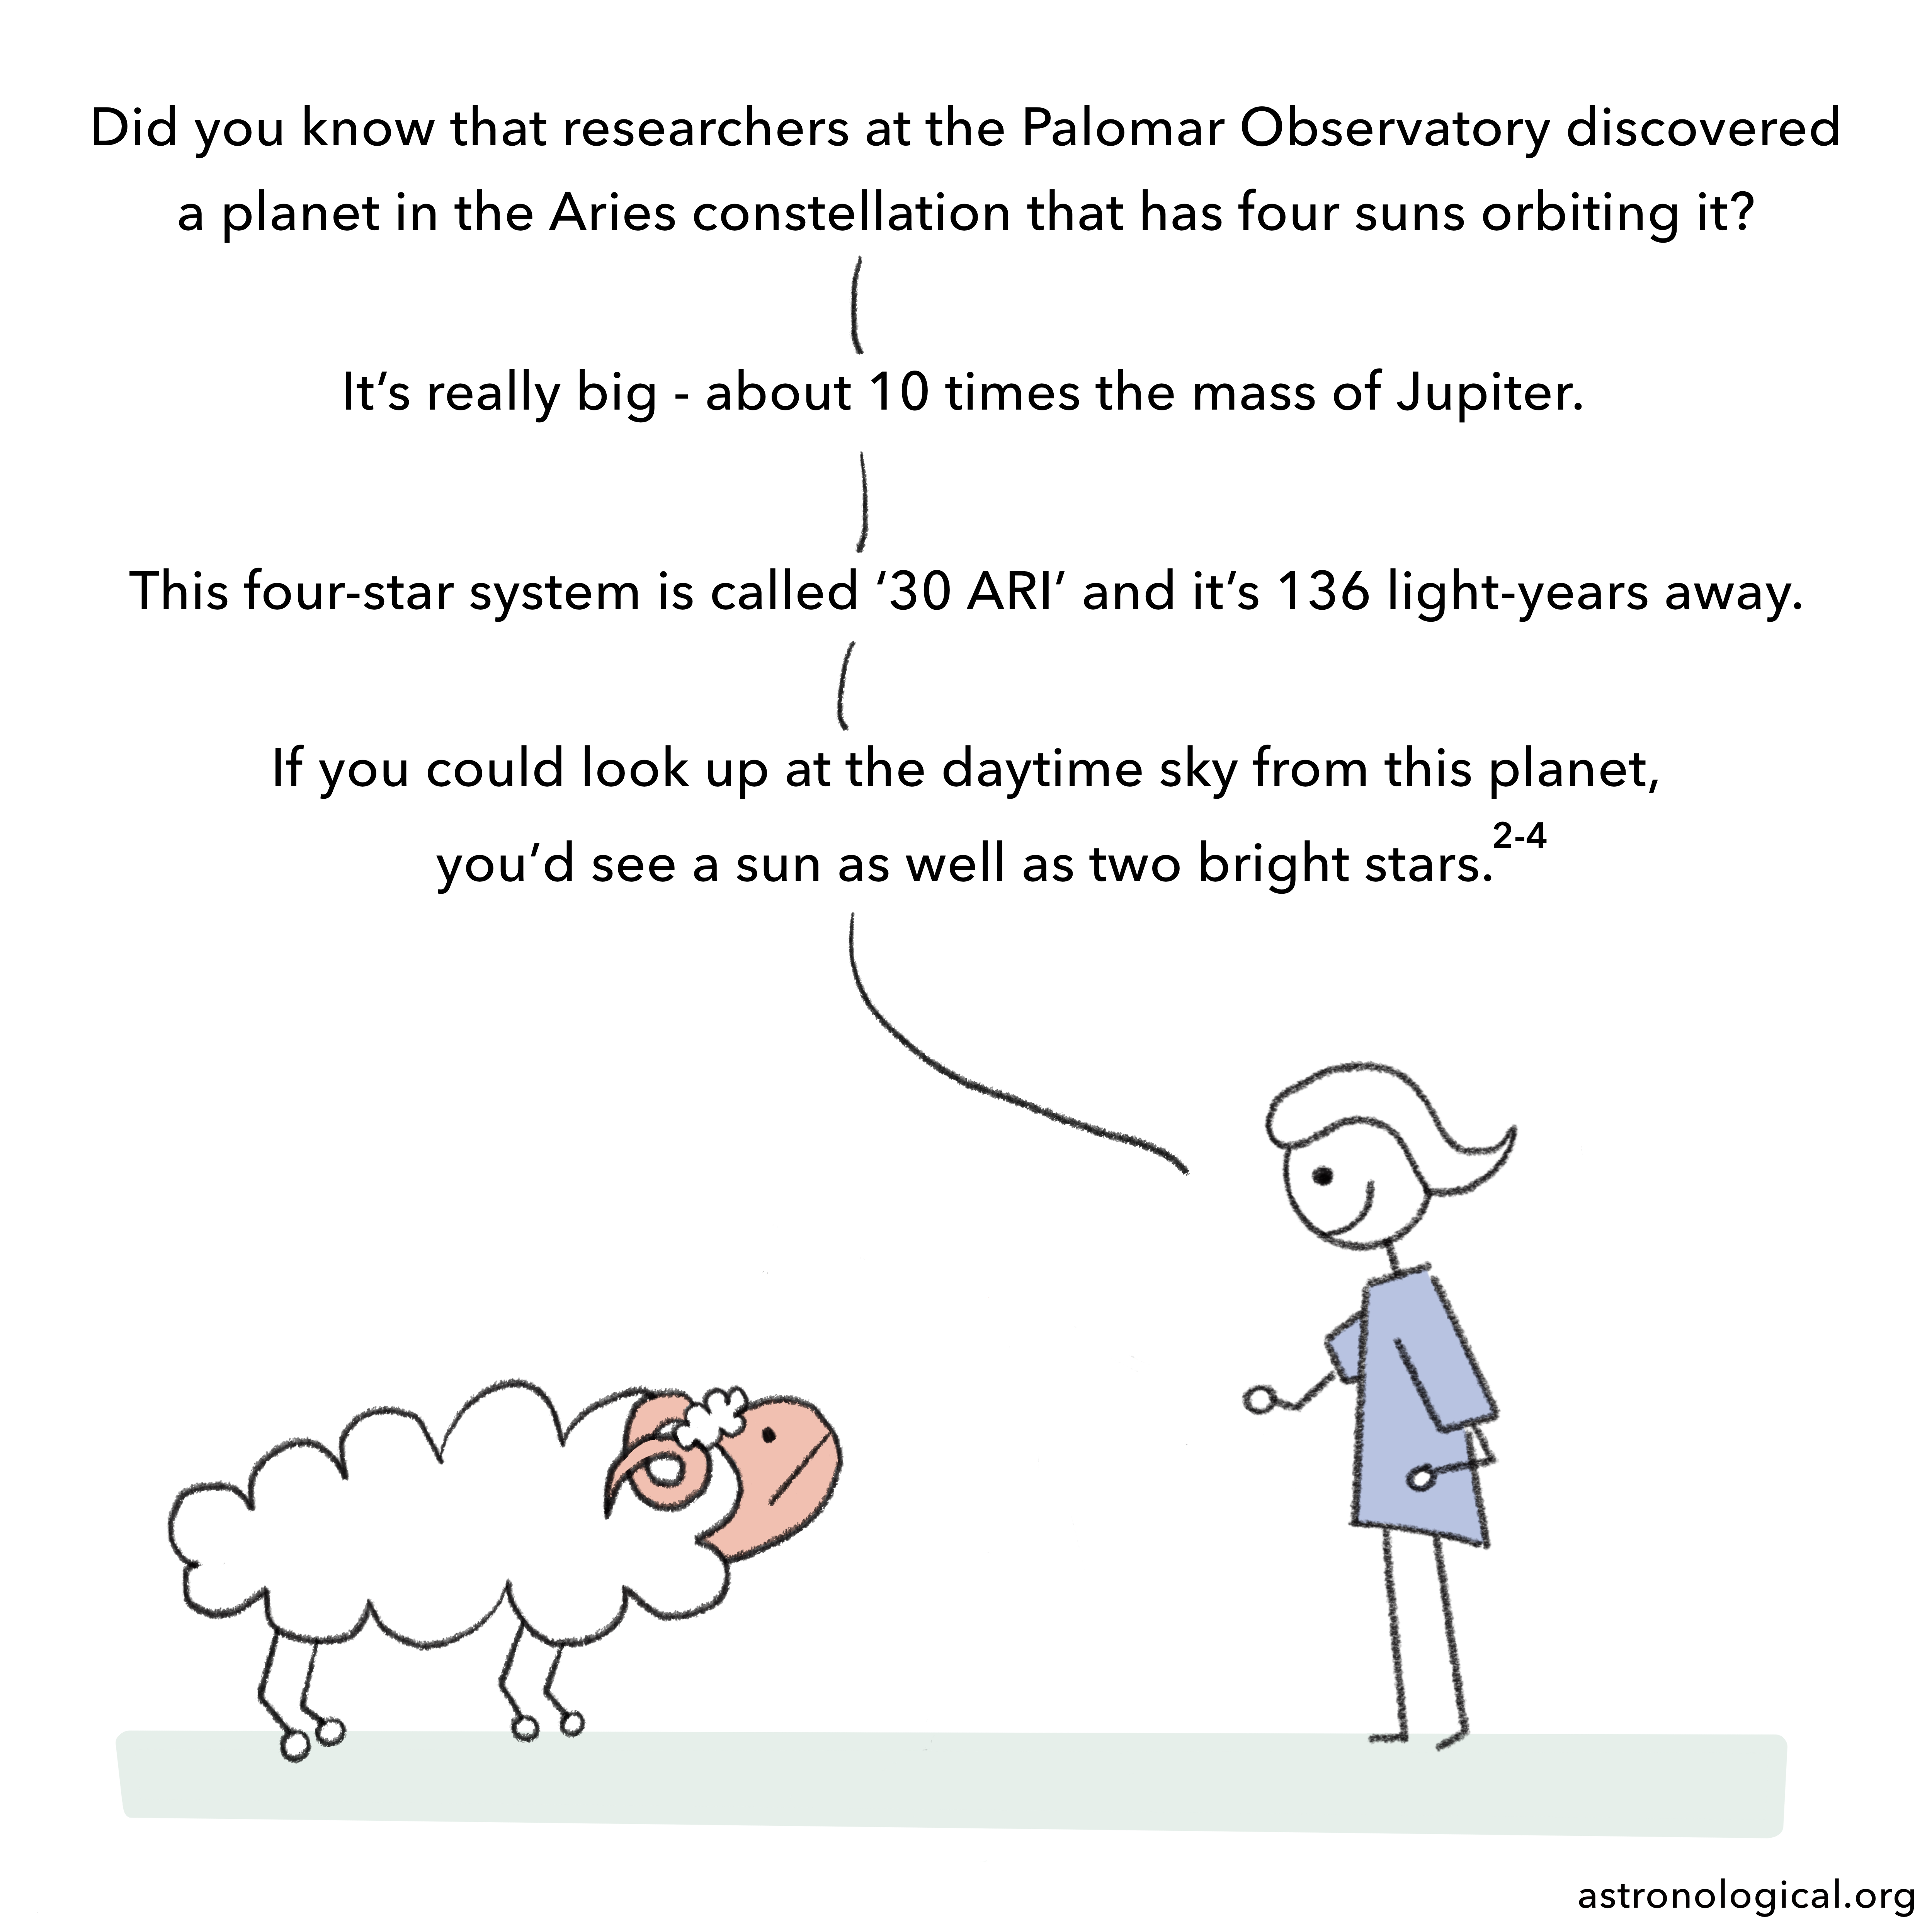 The girl replies to the ram enthusiastically: Did you know that researchers at the Palomar Observatory discovered a planet in the Aries constellation that has four suns orbiting it? It's really big - about 10 times the mass of Jupiter. This four-star system is called '30 ARI' and it's 136 light-years away. If you could look up at the daytime sky from this planet, you'd see a sun as well as two bright stars.